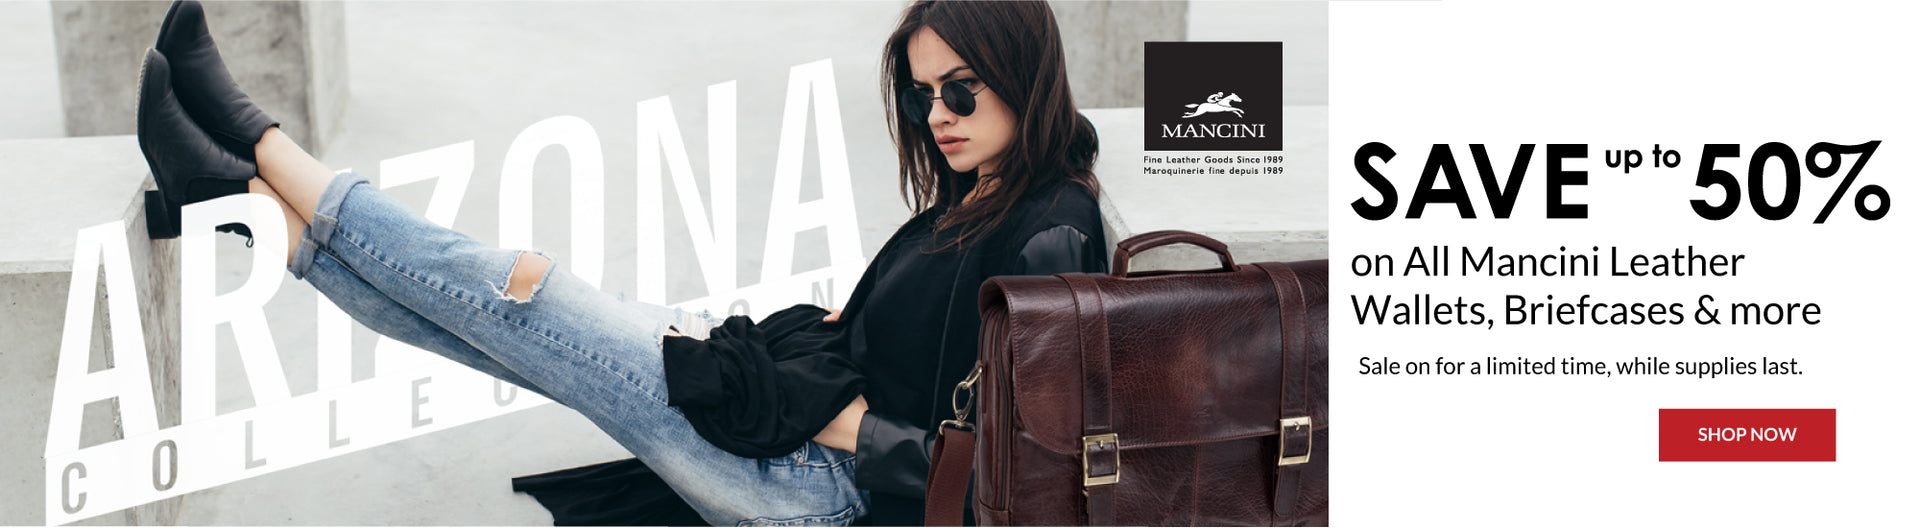 Mancini Leather wallets, briefcases sale